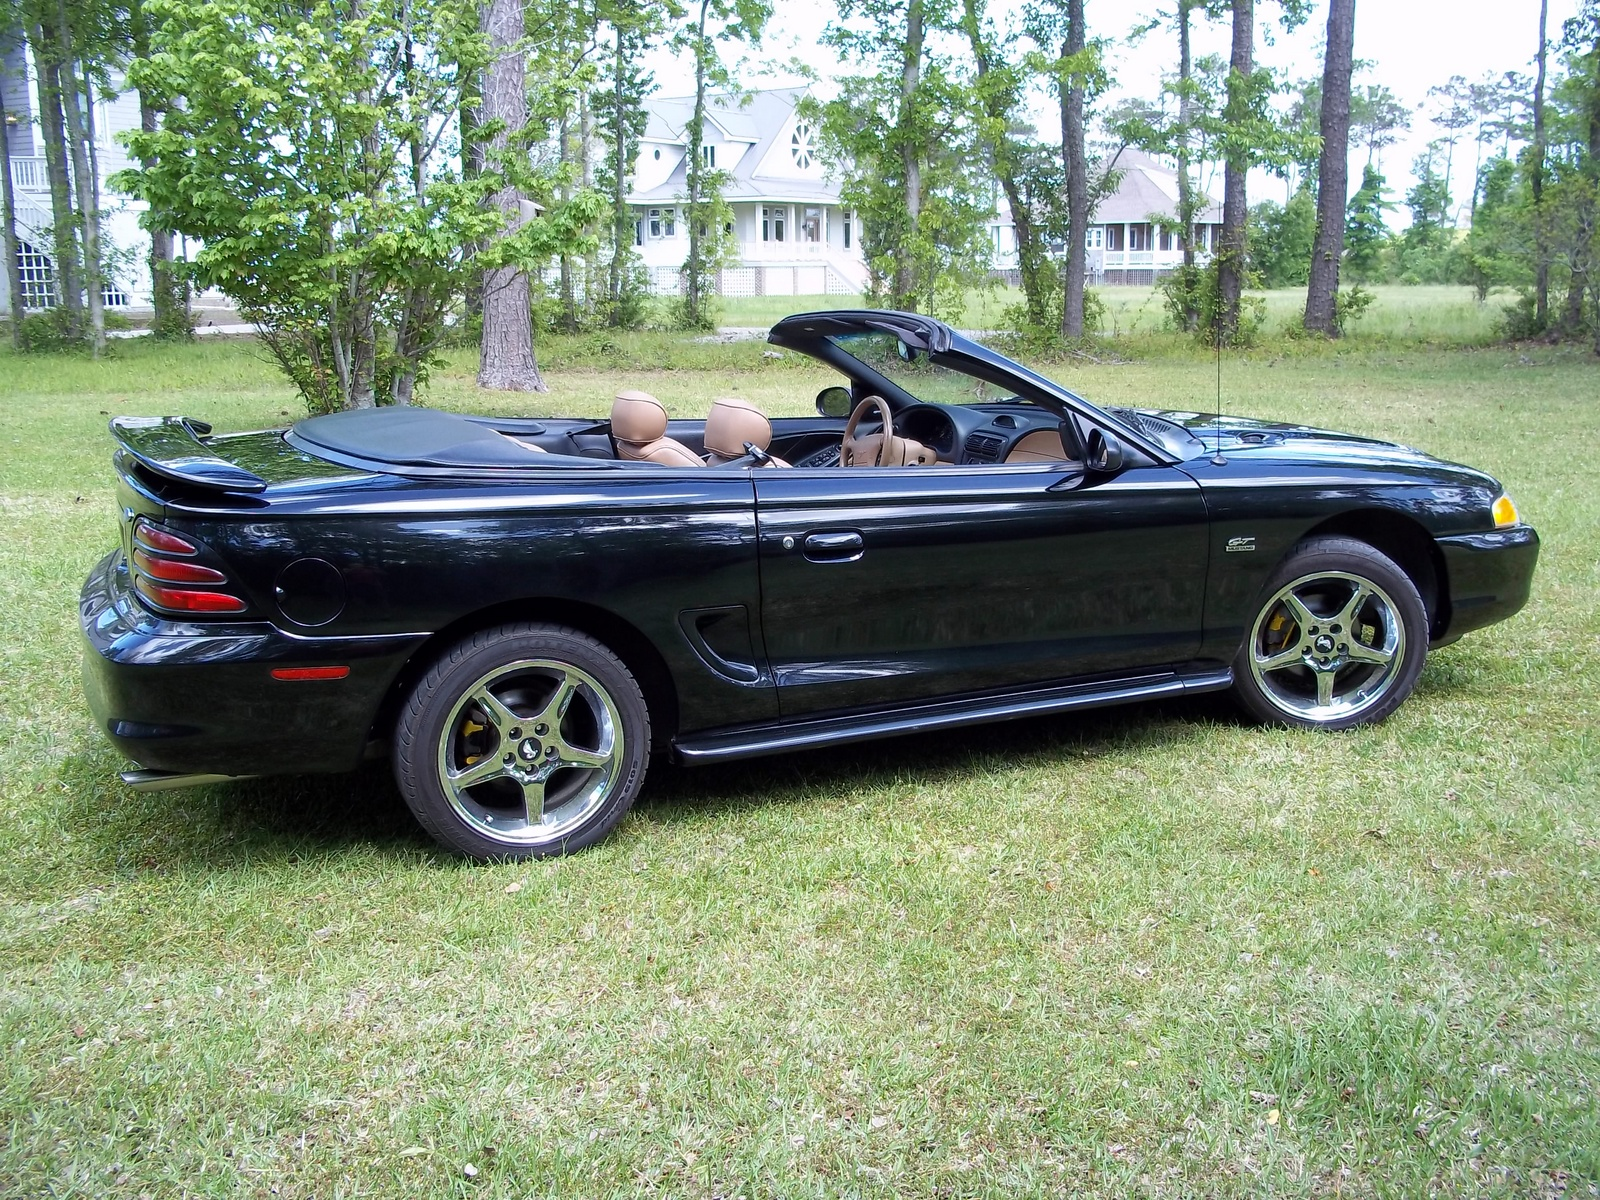 1995 Ford Mustang GT Convertible For Sale - CarGurus